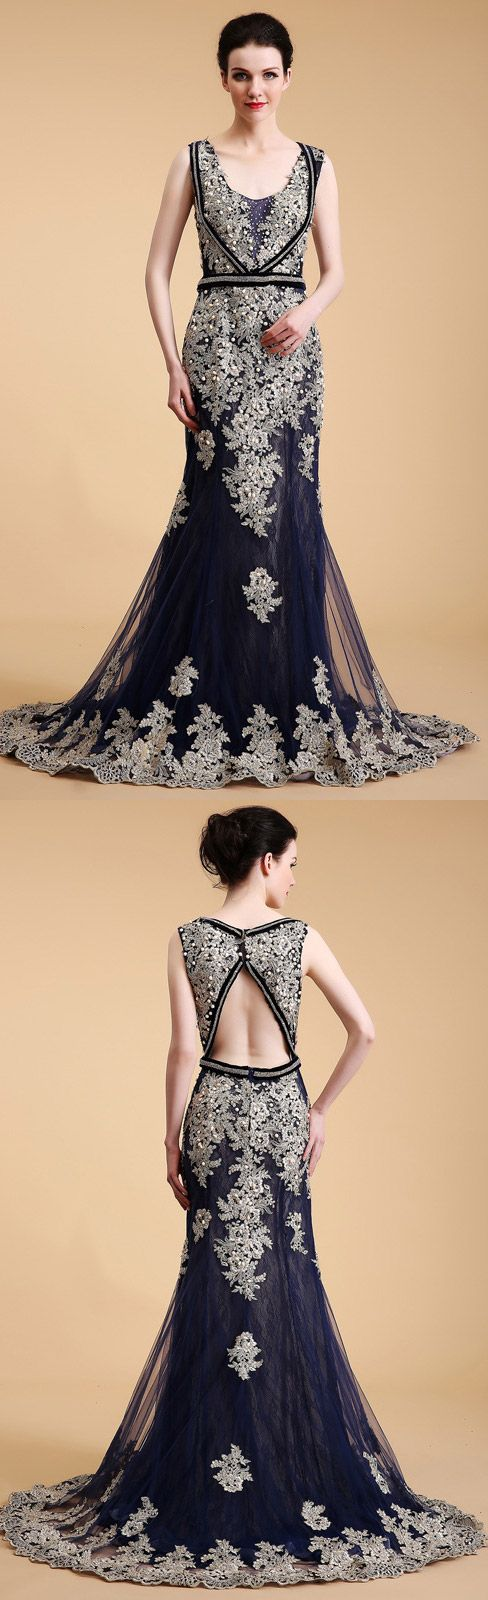 Fitted Mermaid Style Lace Beading Blue and White Evening Dress with Hole Back. 2018 Luxury Embroidery Collection for Mature Women. #GemGrace 2018 new formal dresses preview. High quality and unique embroidery for the luxe collection. Click to view more about our styles!